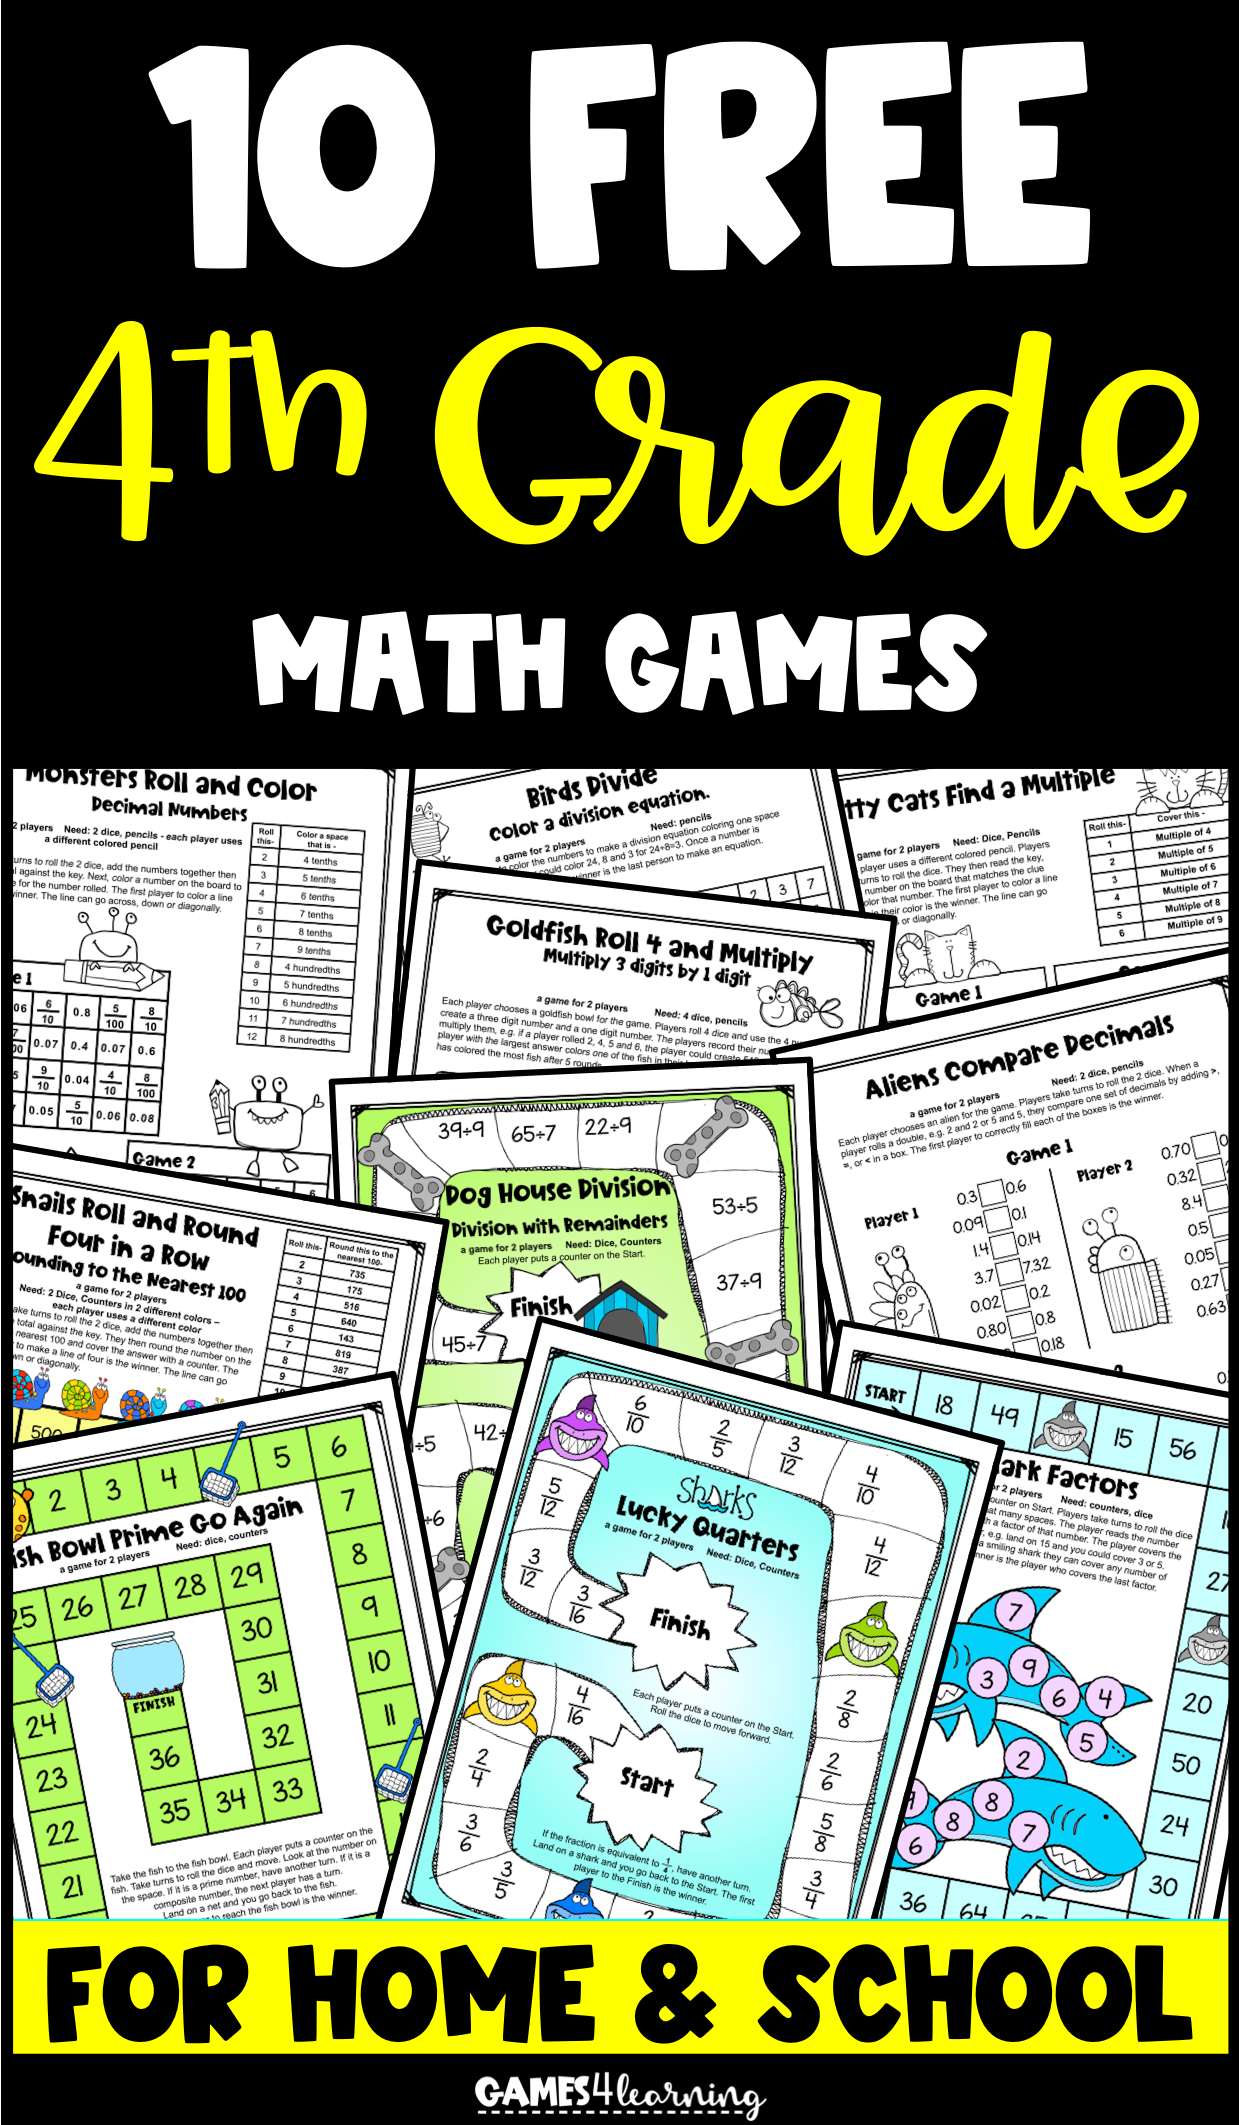 Free 4th Grade Math Activities In 2020 Math Games Free Math Games Fourth Grade Math [ 2125 x 1239 Pixel ]